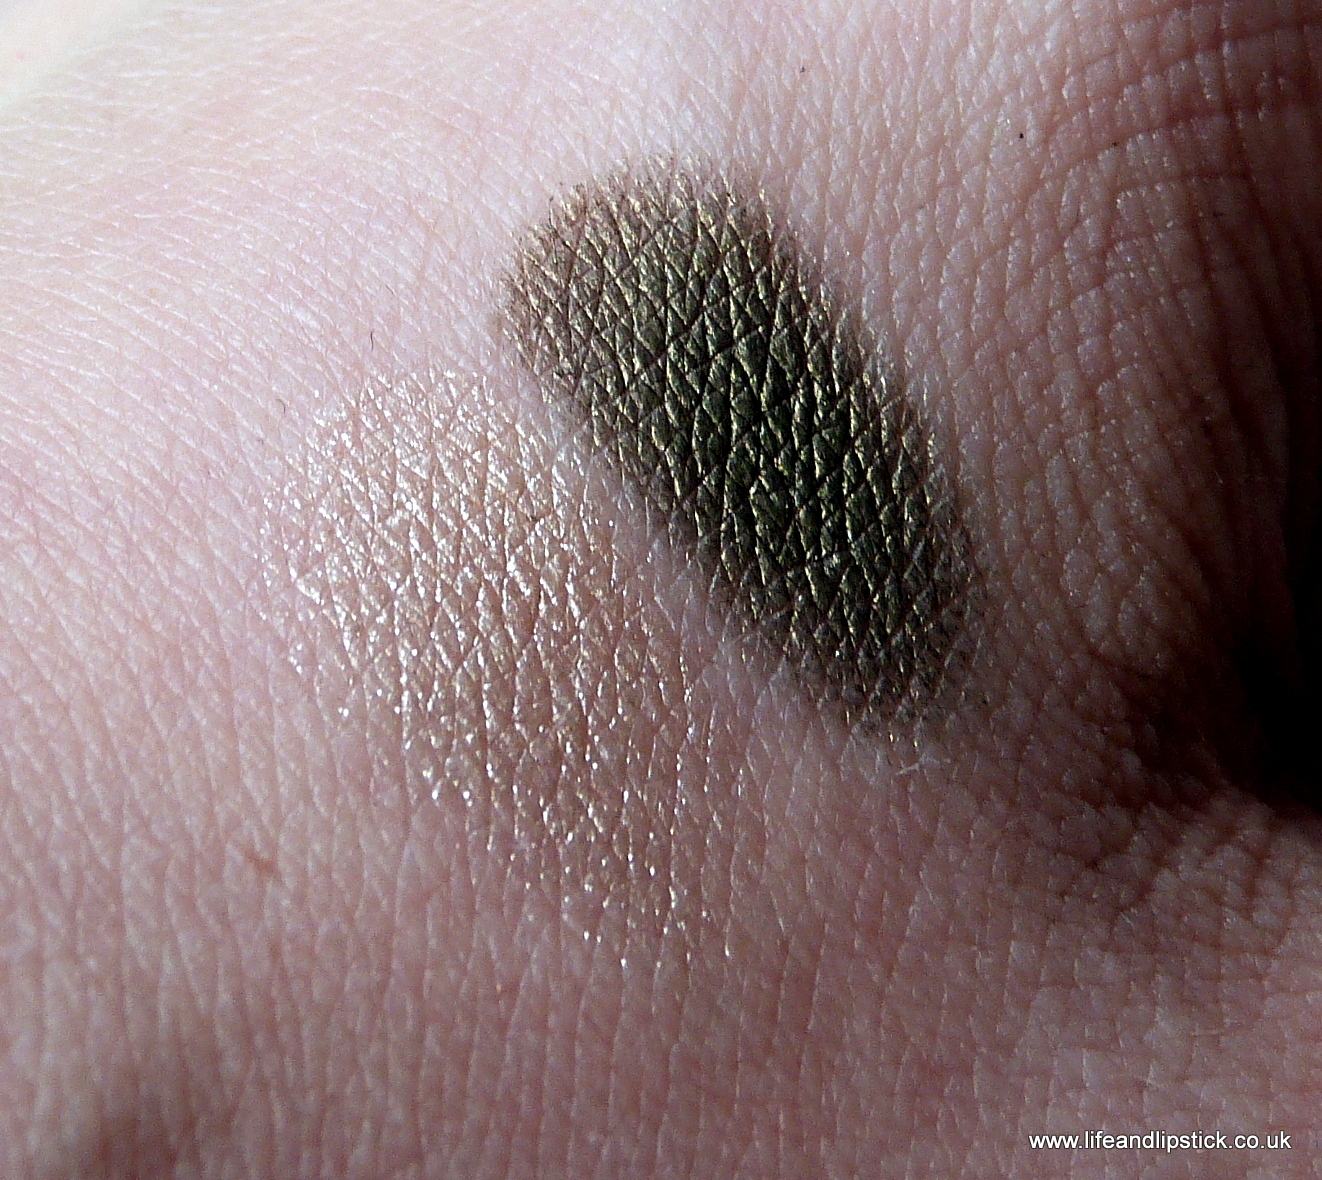 L'Oreal Paris Color Riche Mono Eyeshadow in Nude and Smoky